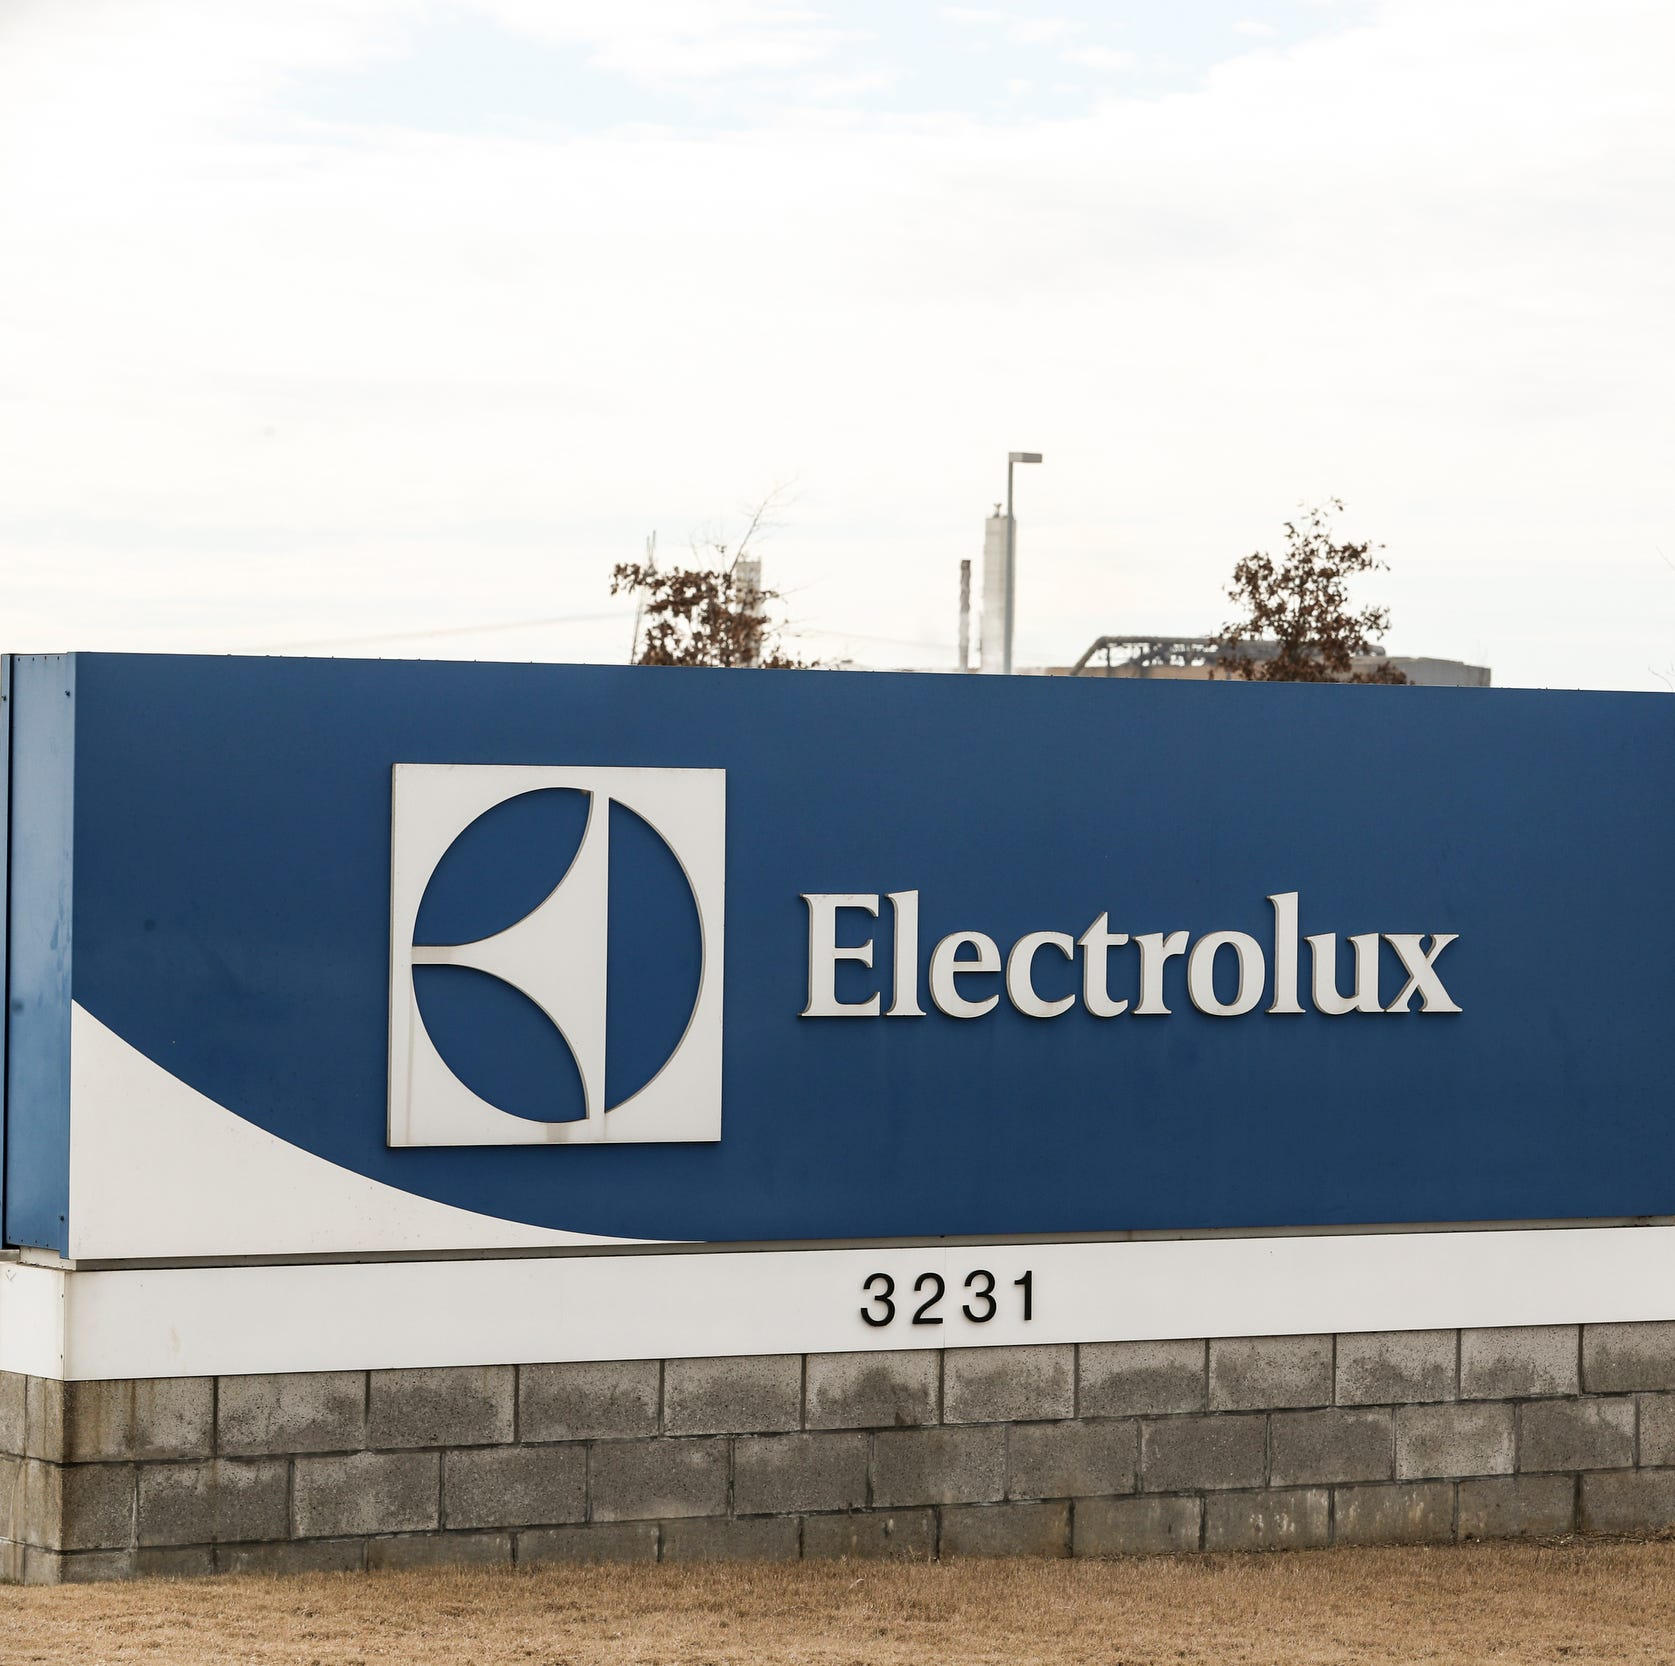 Electrolux voluntarily ends PILOT, will pay full property tax through closure